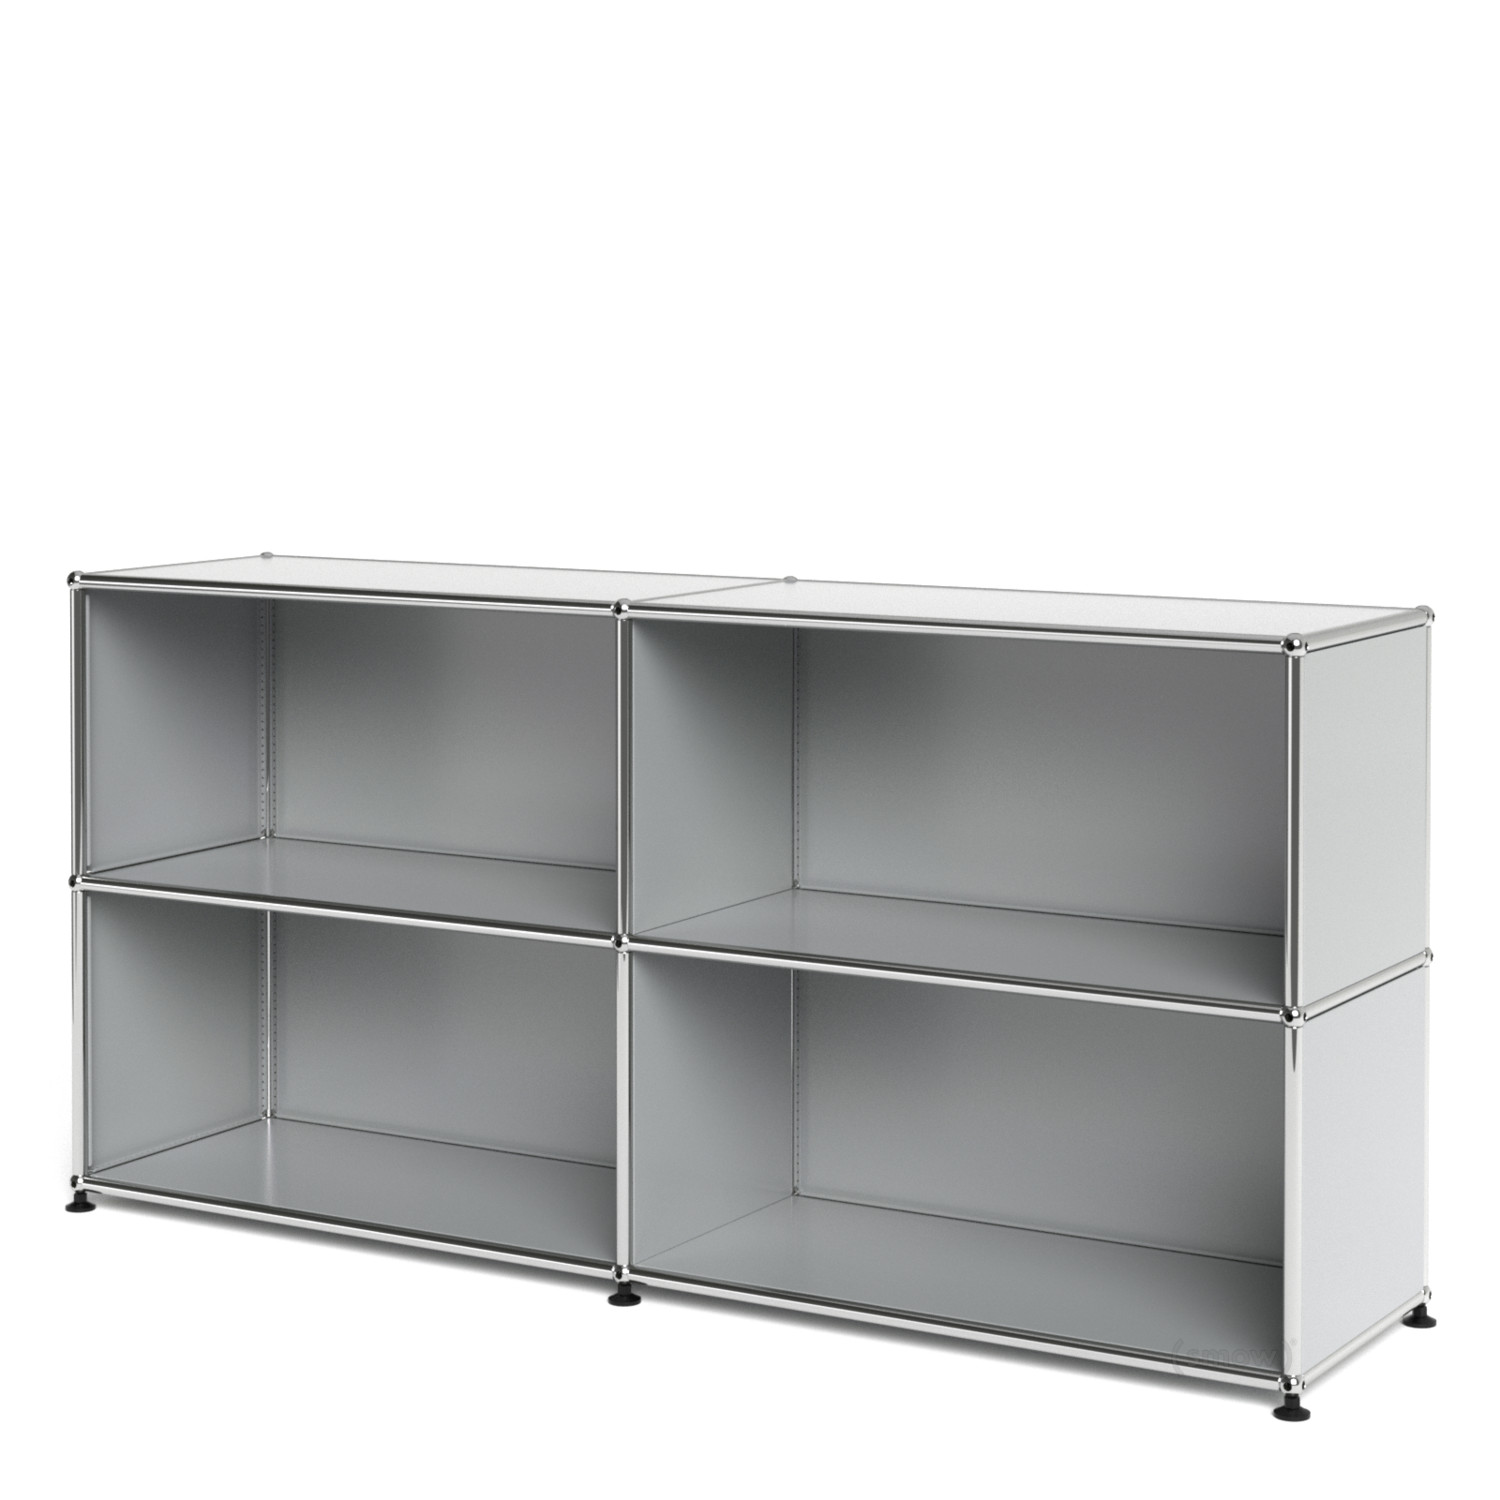 usm haller sideboard l customisable light grey ral 7035. Black Bedroom Furniture Sets. Home Design Ideas